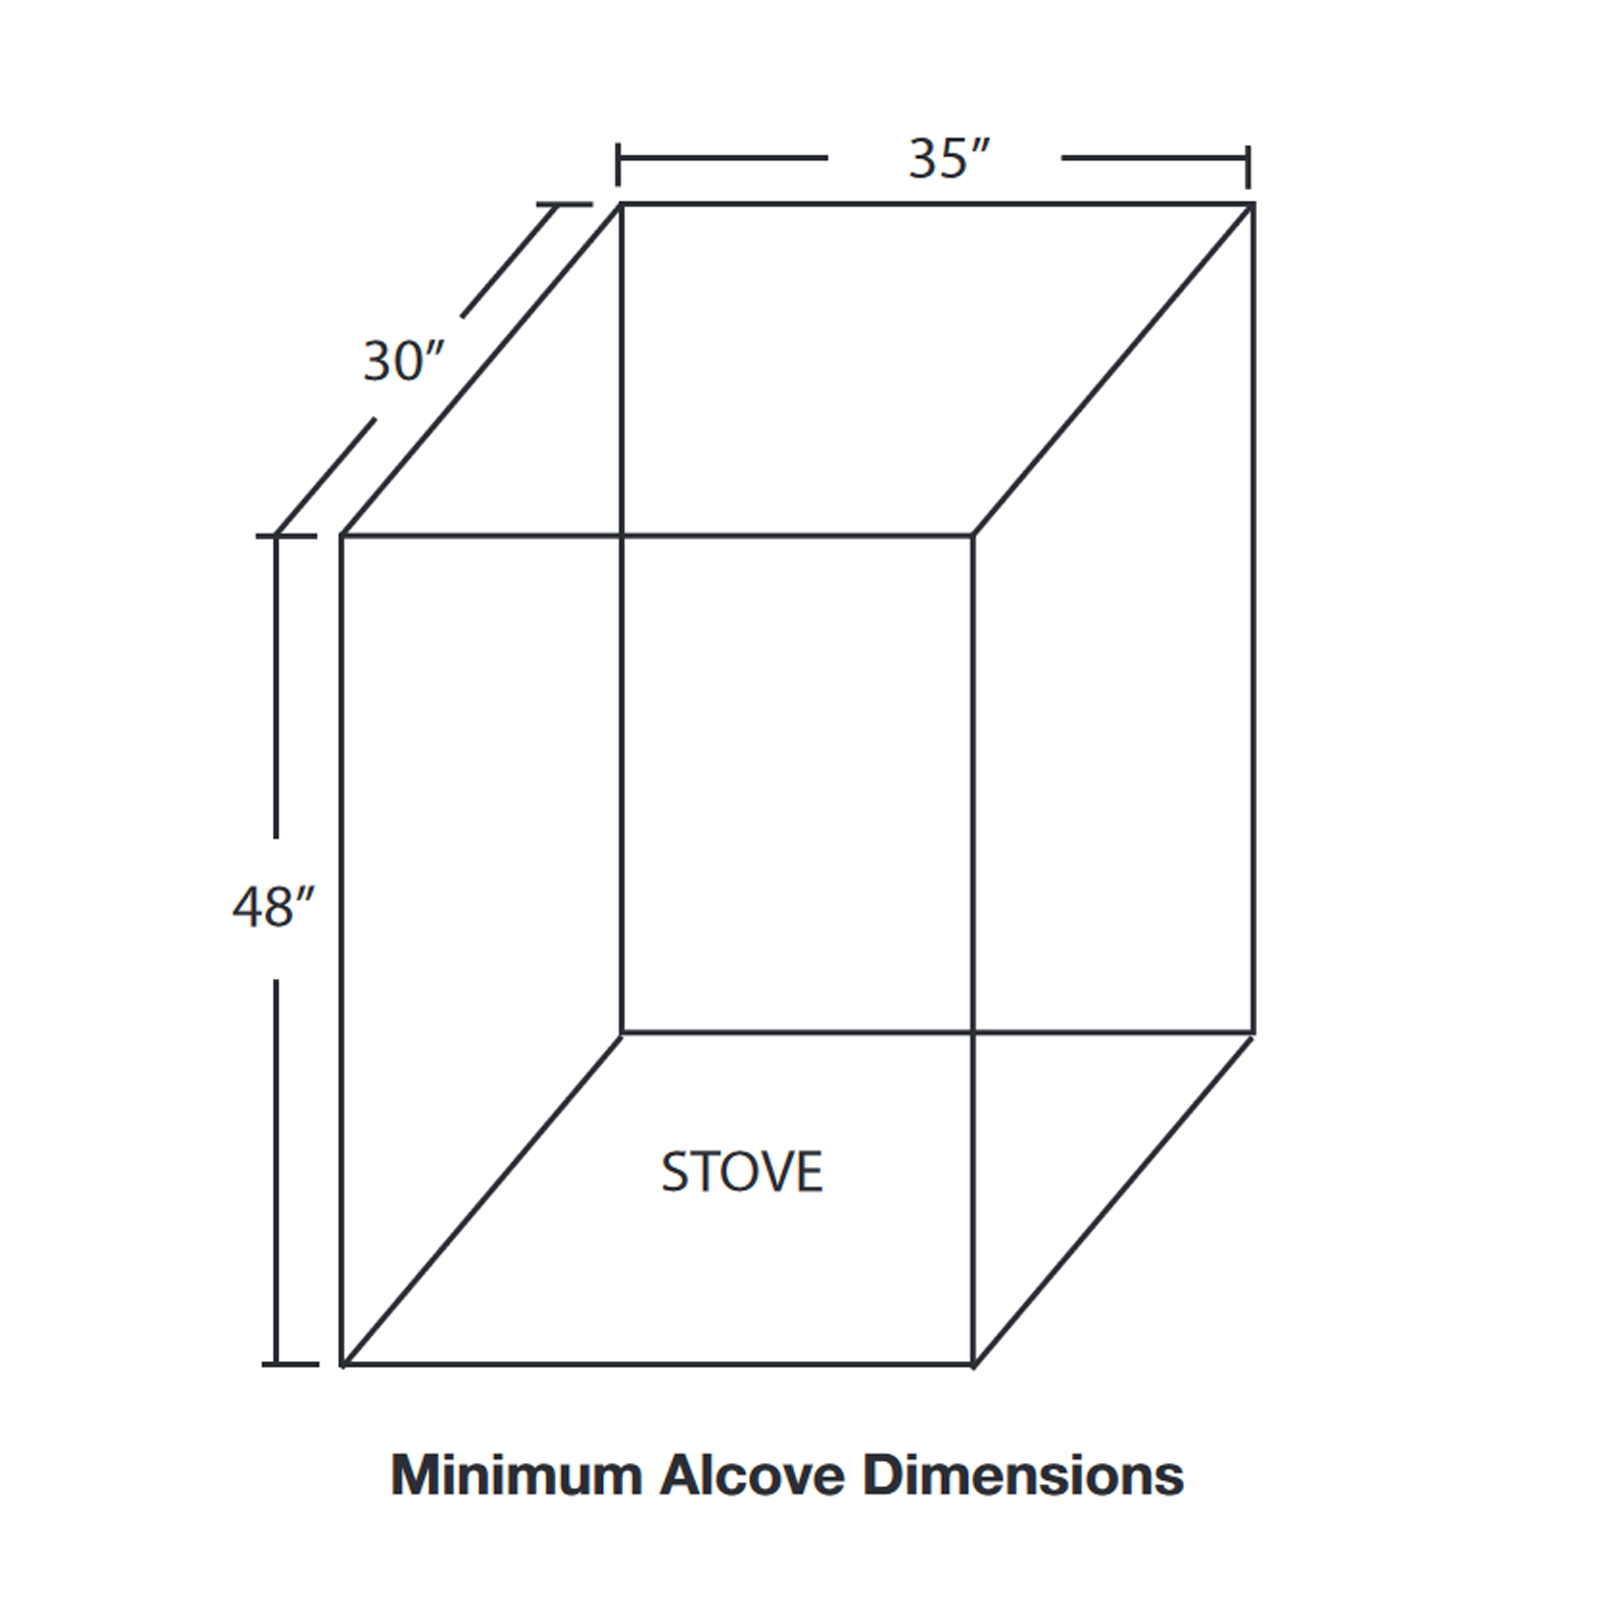 NPS45 Technical Drawing 2